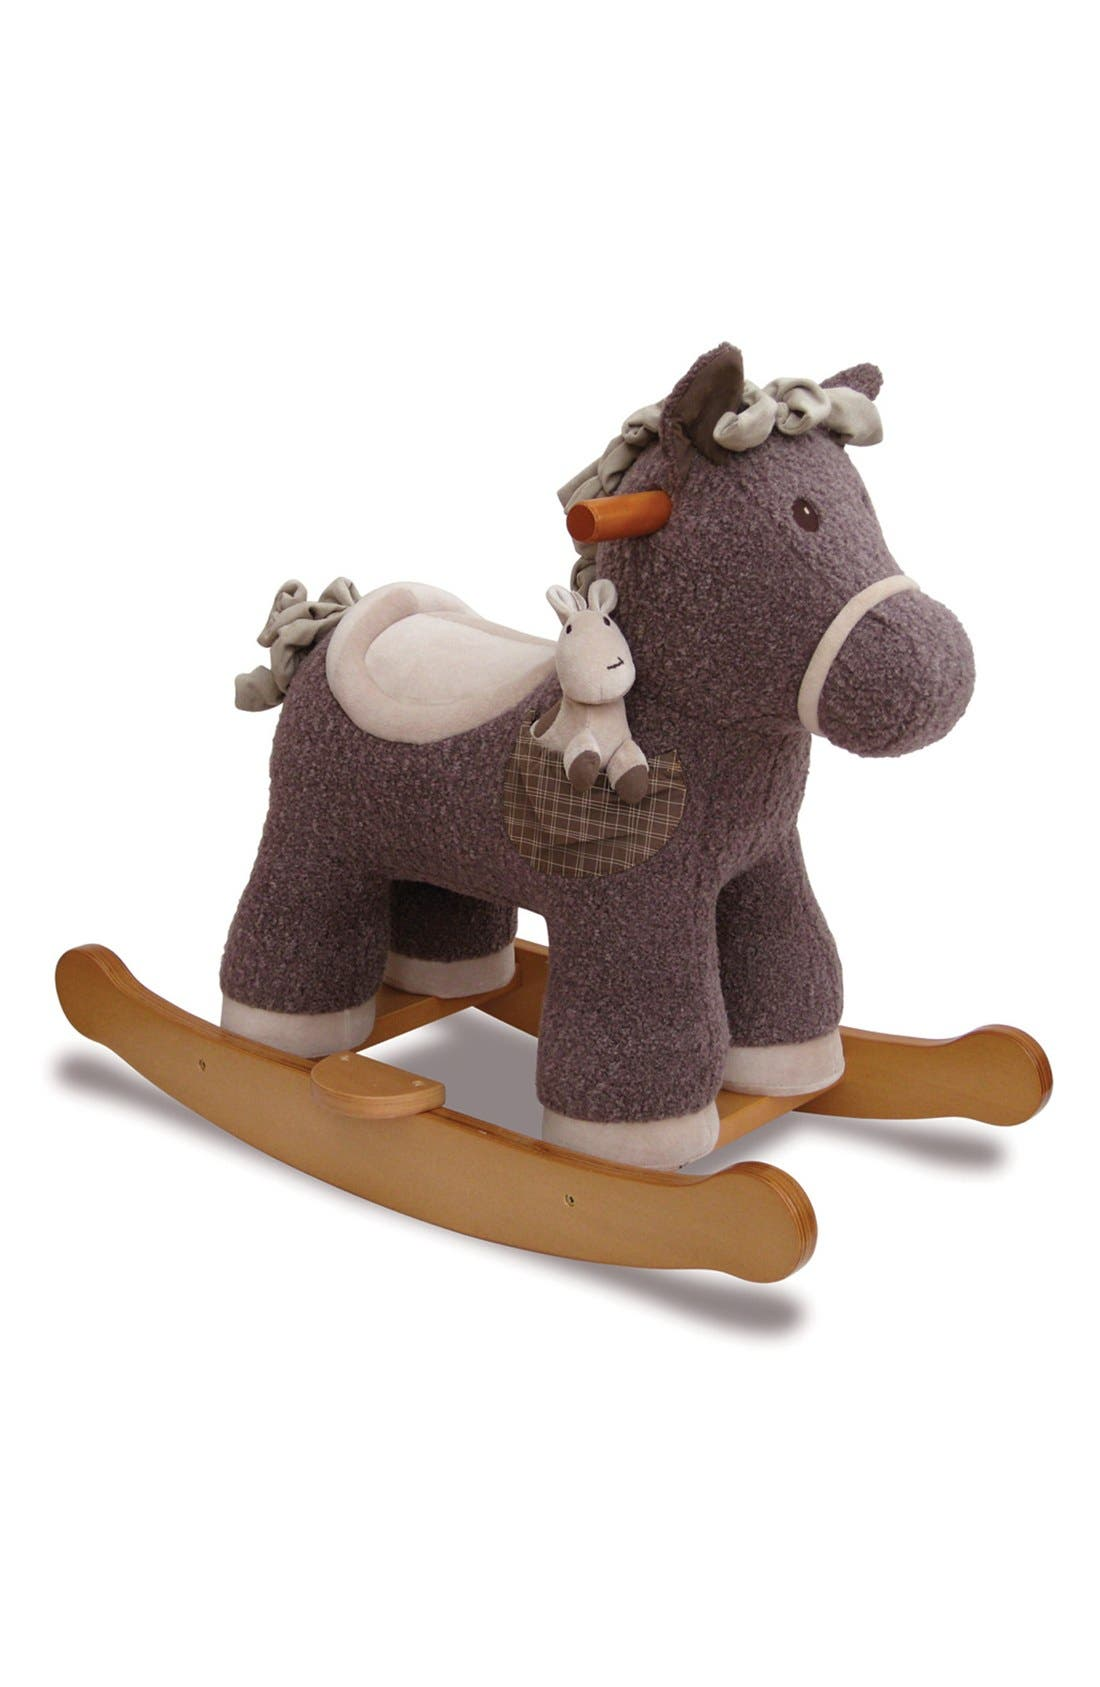 Main Image - Little Bird Told Me Rocking Horse & Stuffed Animal